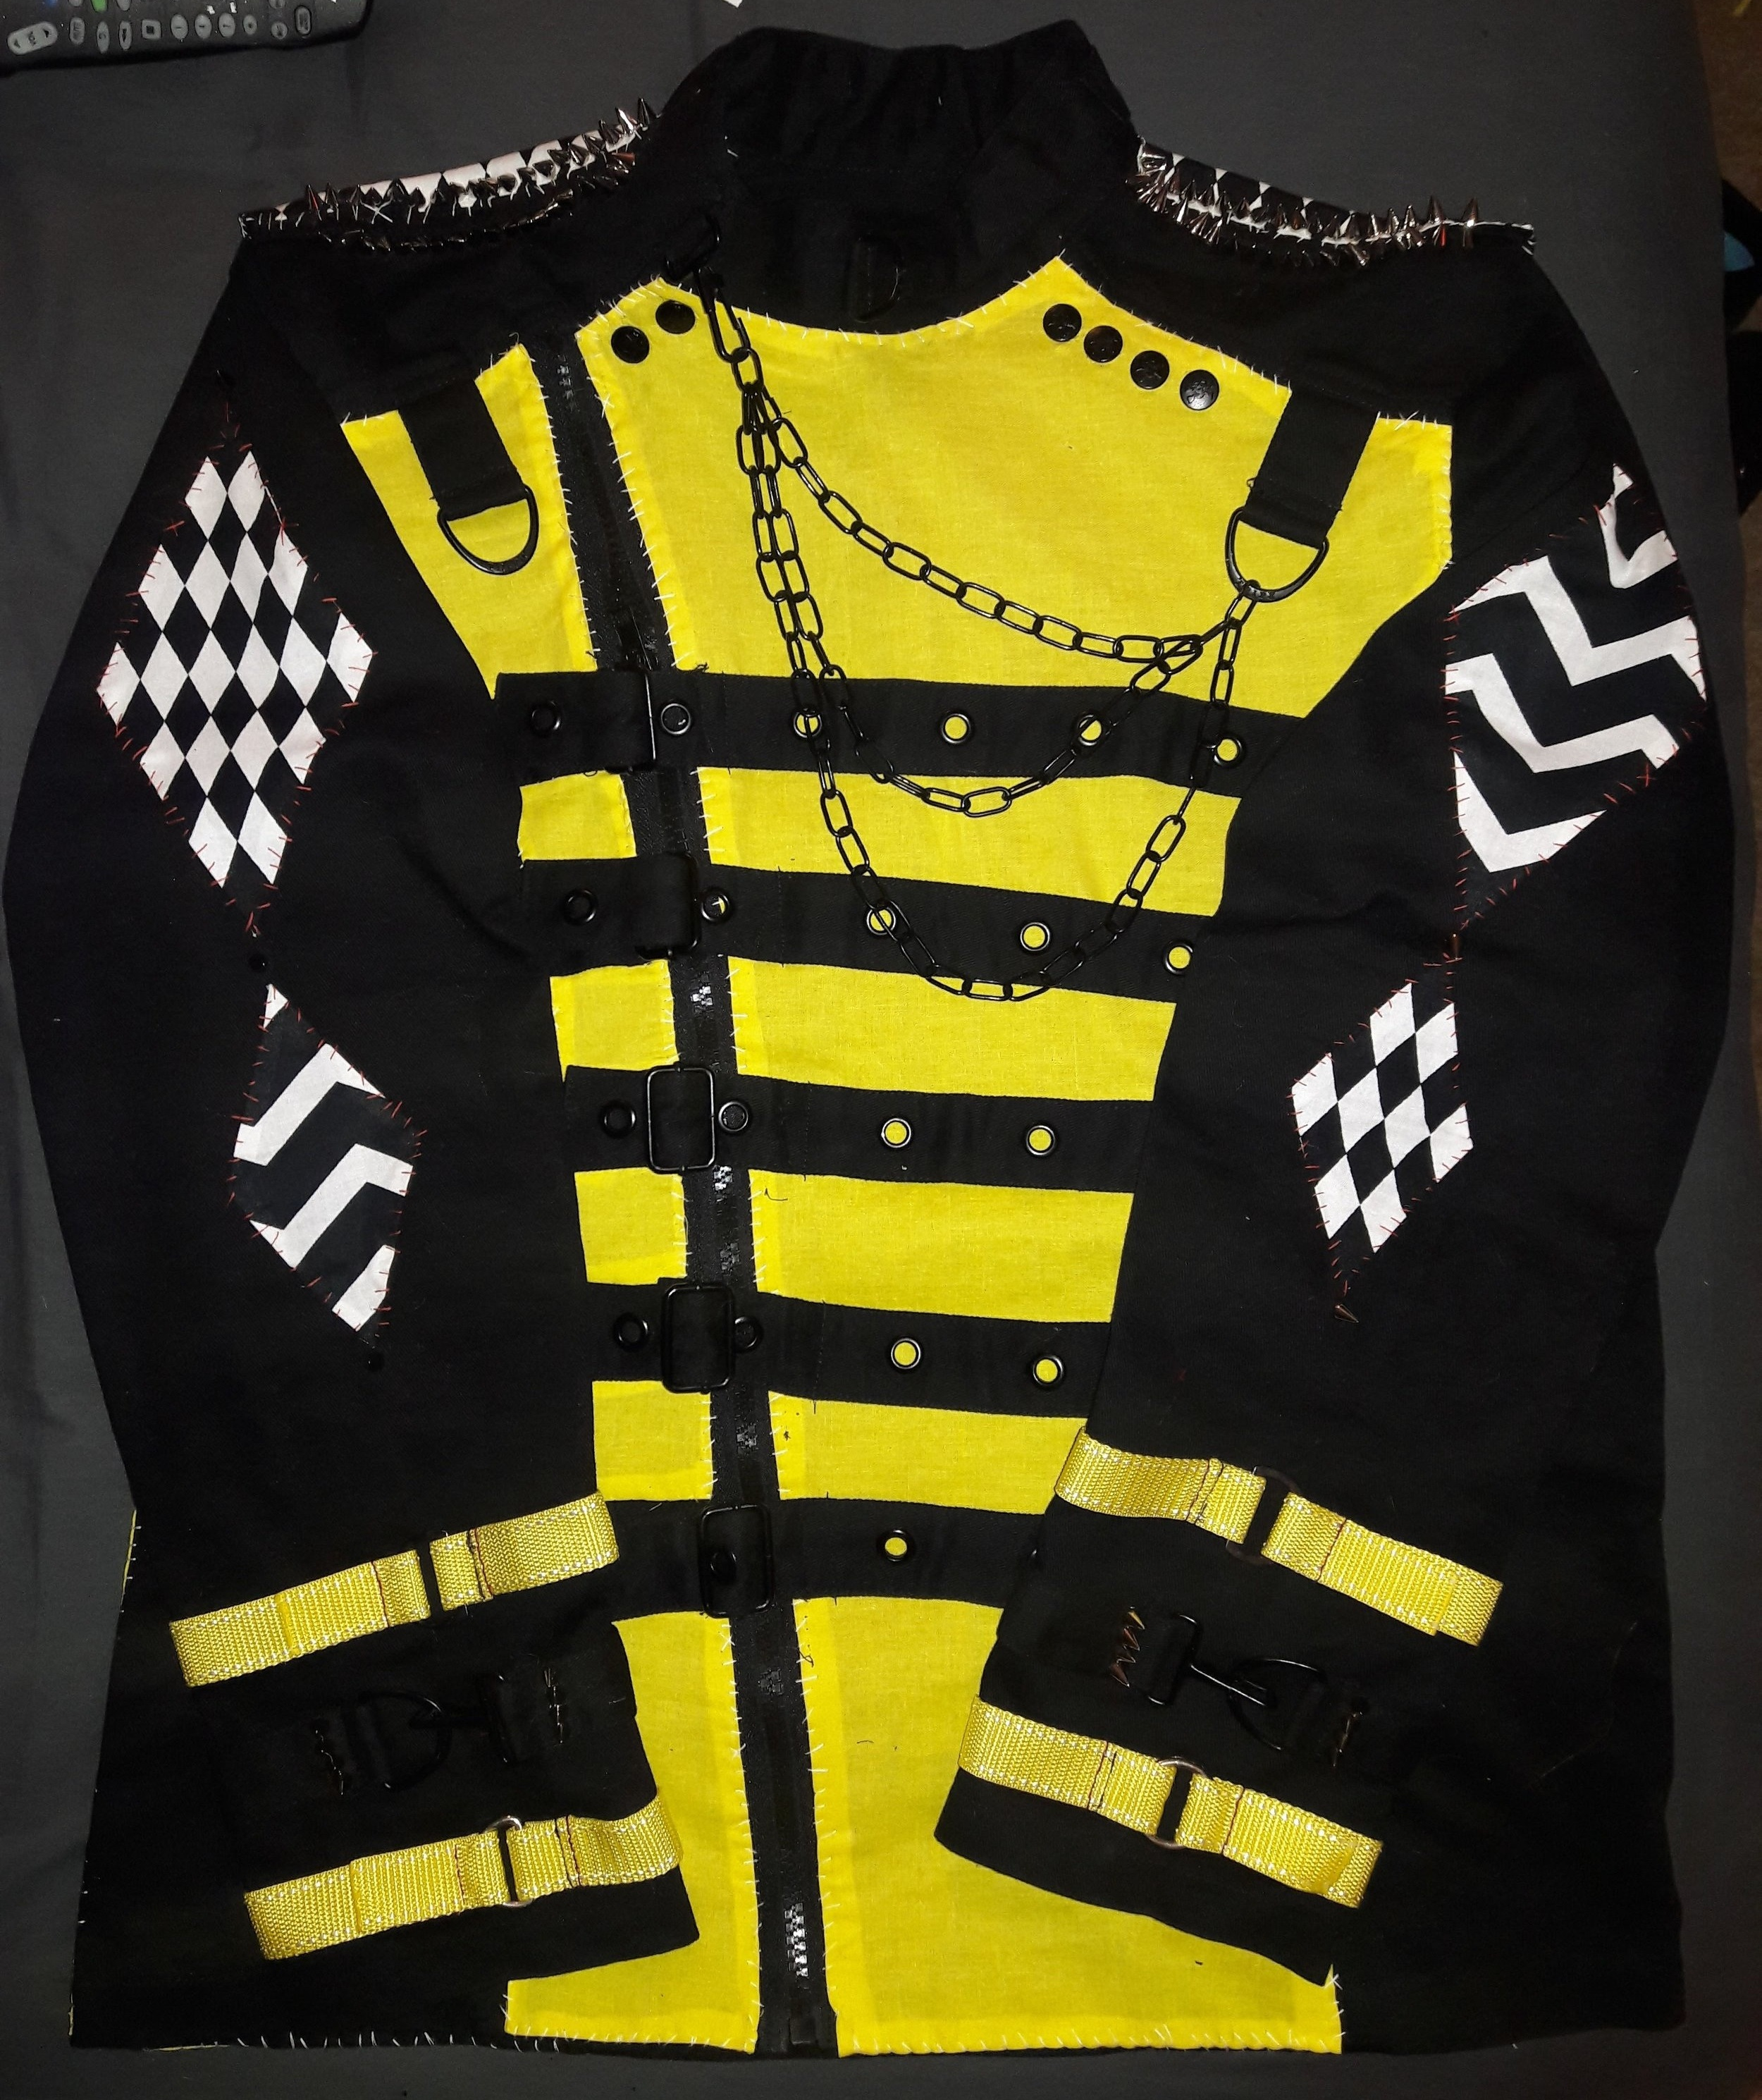 Tweak- Fright Fest, 2016  Piece commissioned by Cole Potter  Trip jacket purchased and customized: yellow paneling added, studs, patches, straps, and chains added.